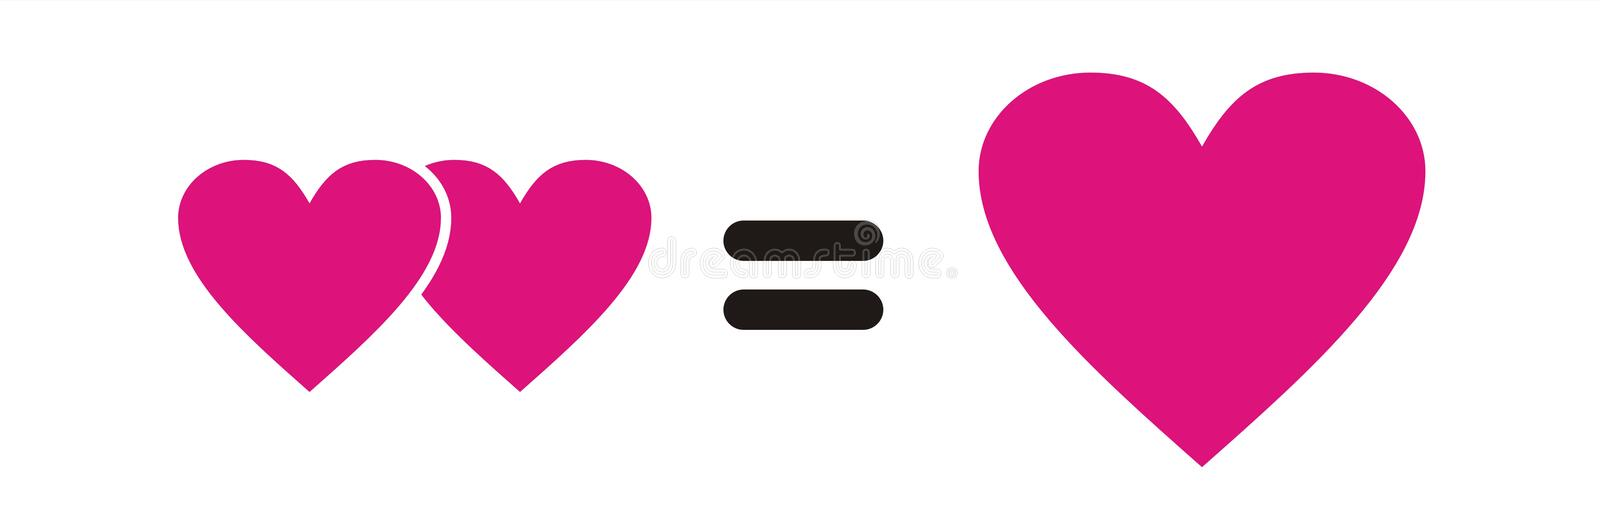 Pink heart interaction royalty free stock photos